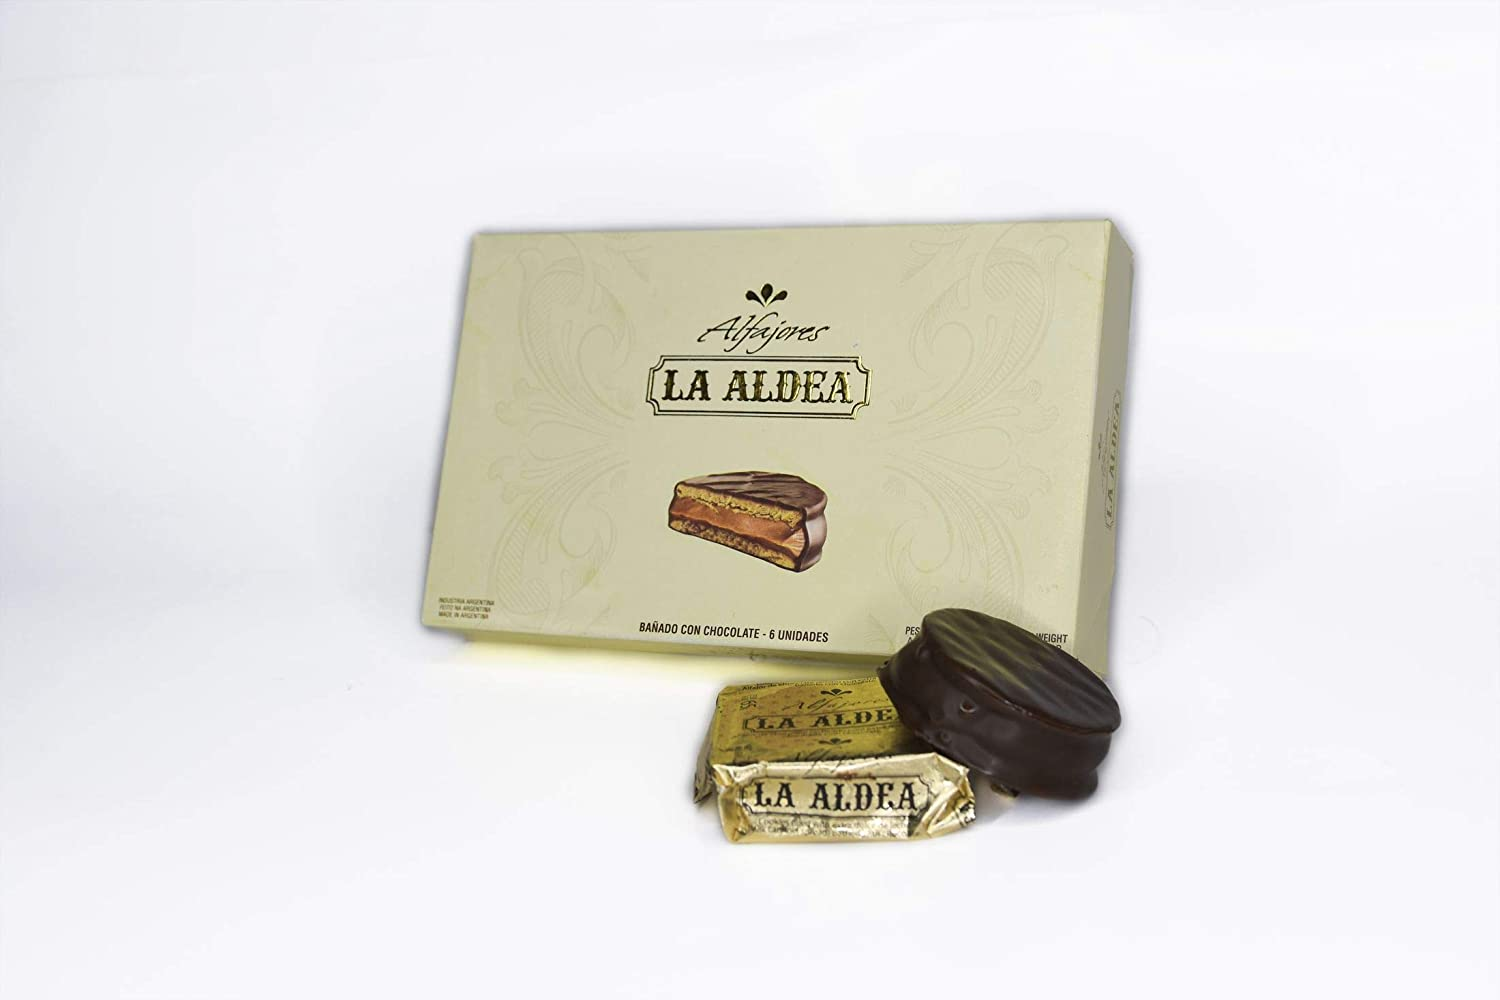 Amazon.com : Alfajores Argentinos de chocolate (6 unidades) : Grocery & Gourmet Food